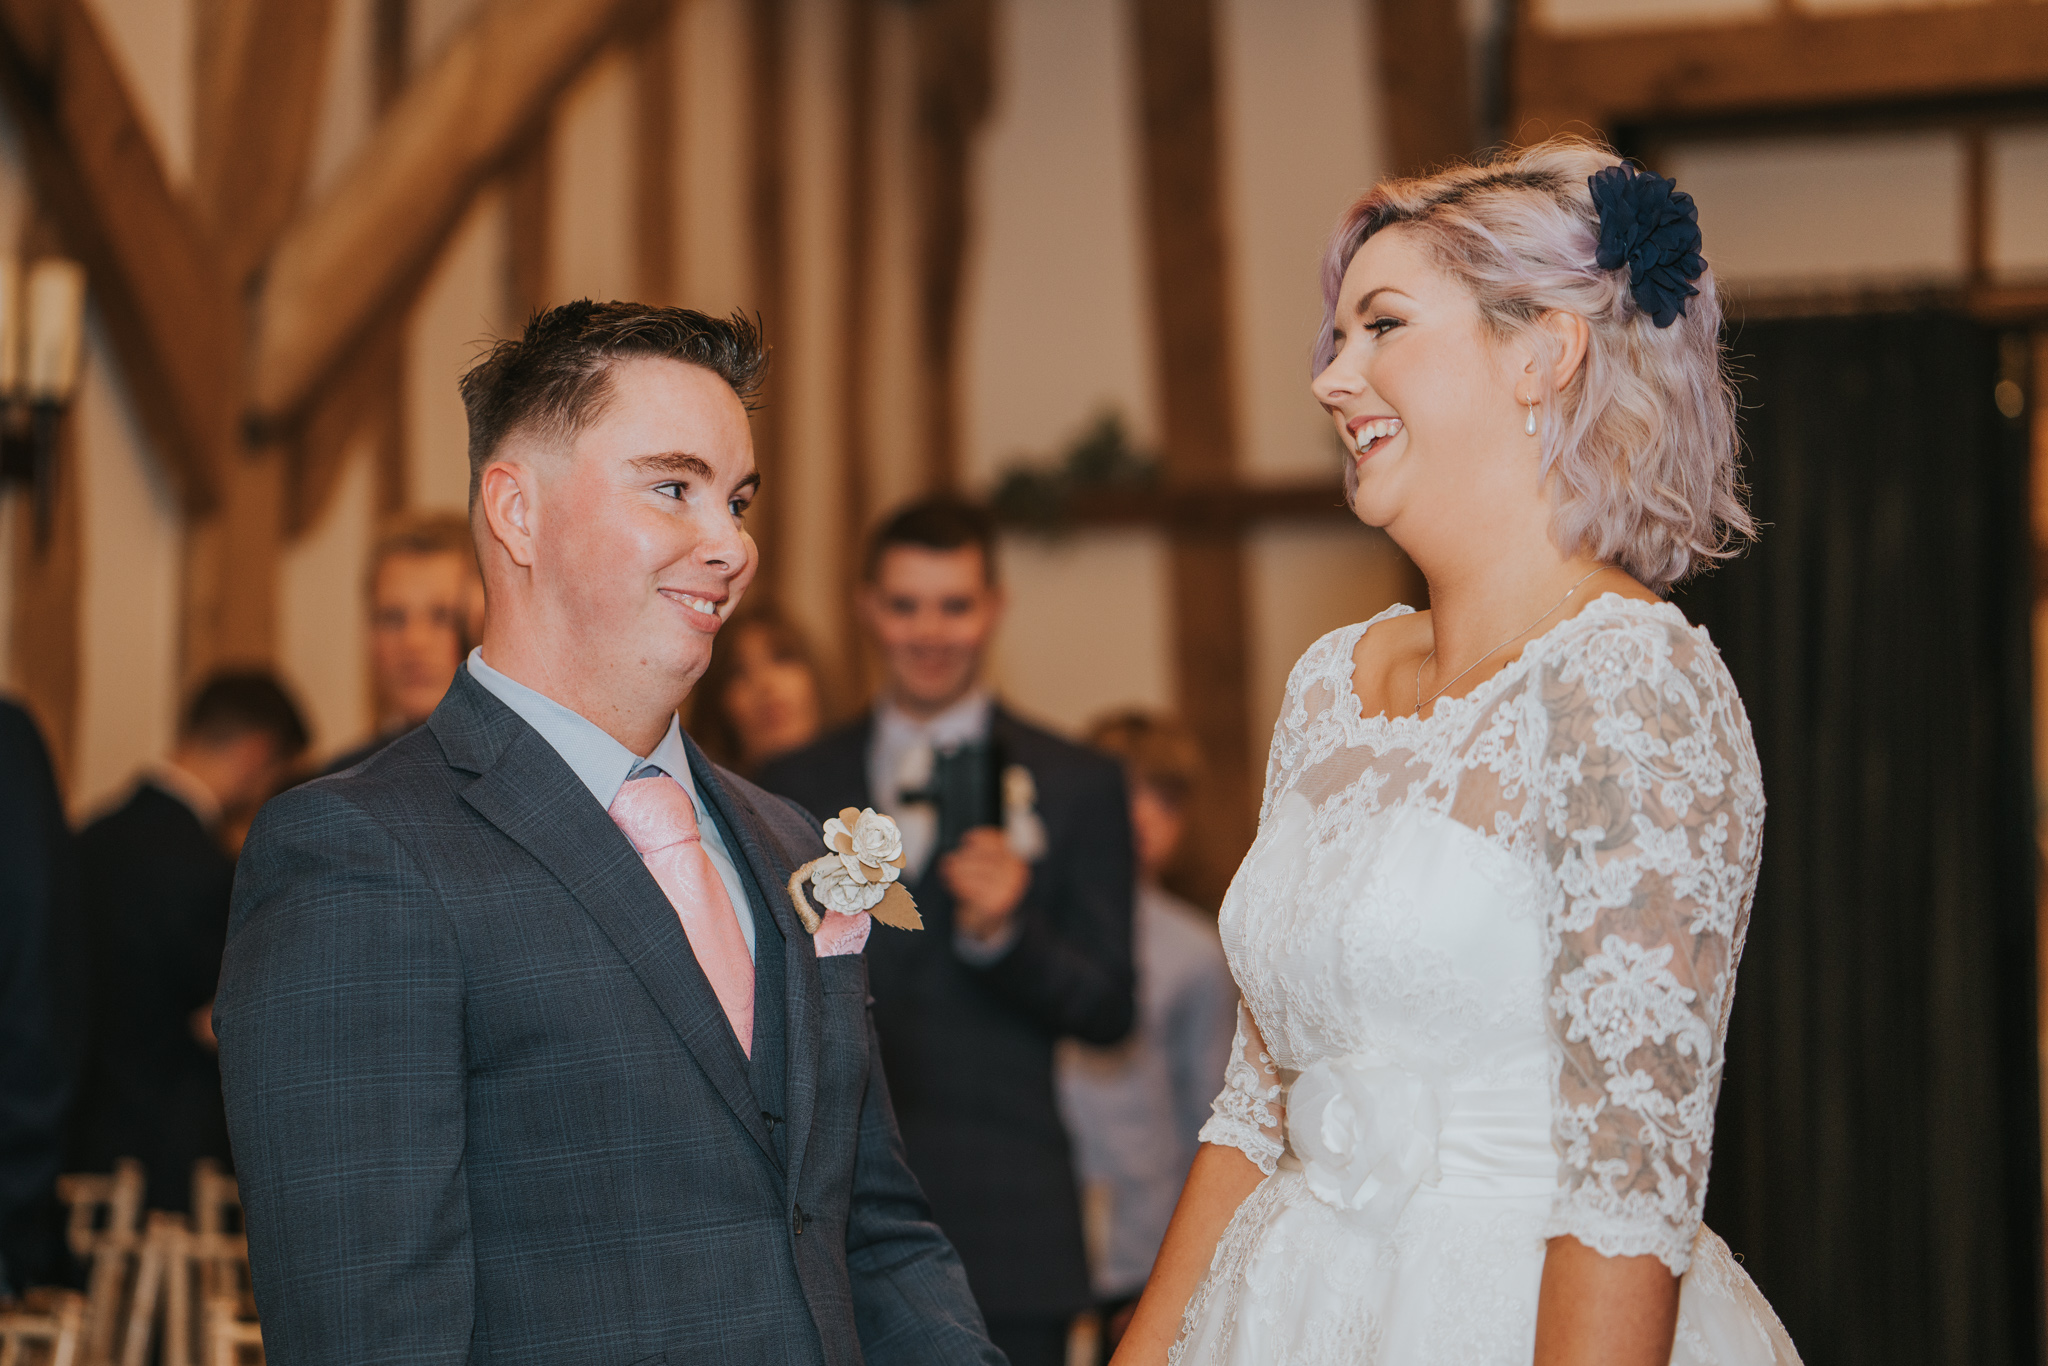 rhia-james-rustic-crabbs-barn-vintage-50s-retro-wedding-grace-elizabeth-colchester-essex-alternative-relaxed-wedding-family-photography-devon-suffolk-norfolk-essex (73 of 138).jpg